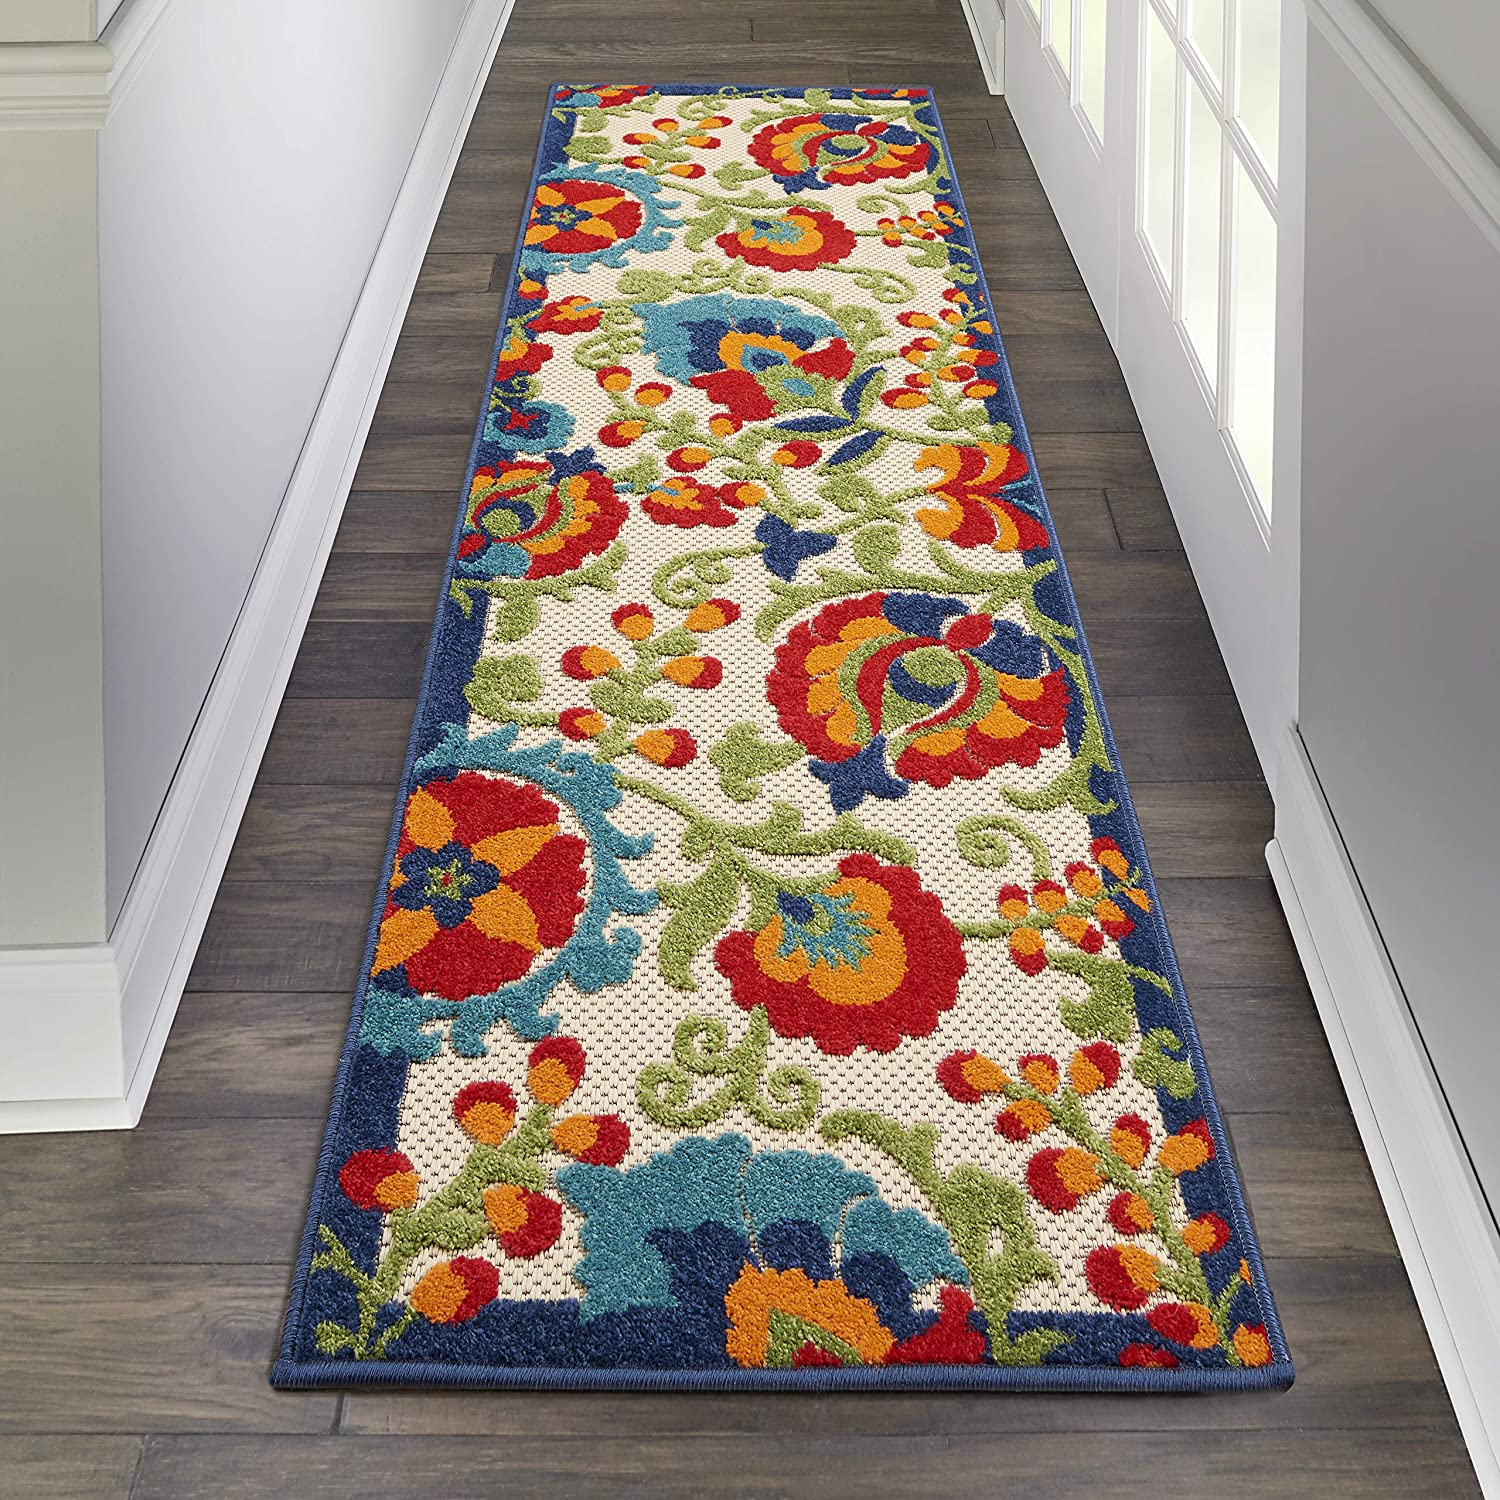 Nourison Aloha Indoor/Outdoor Floral Multicolor Area Rug Runner (2'x6')